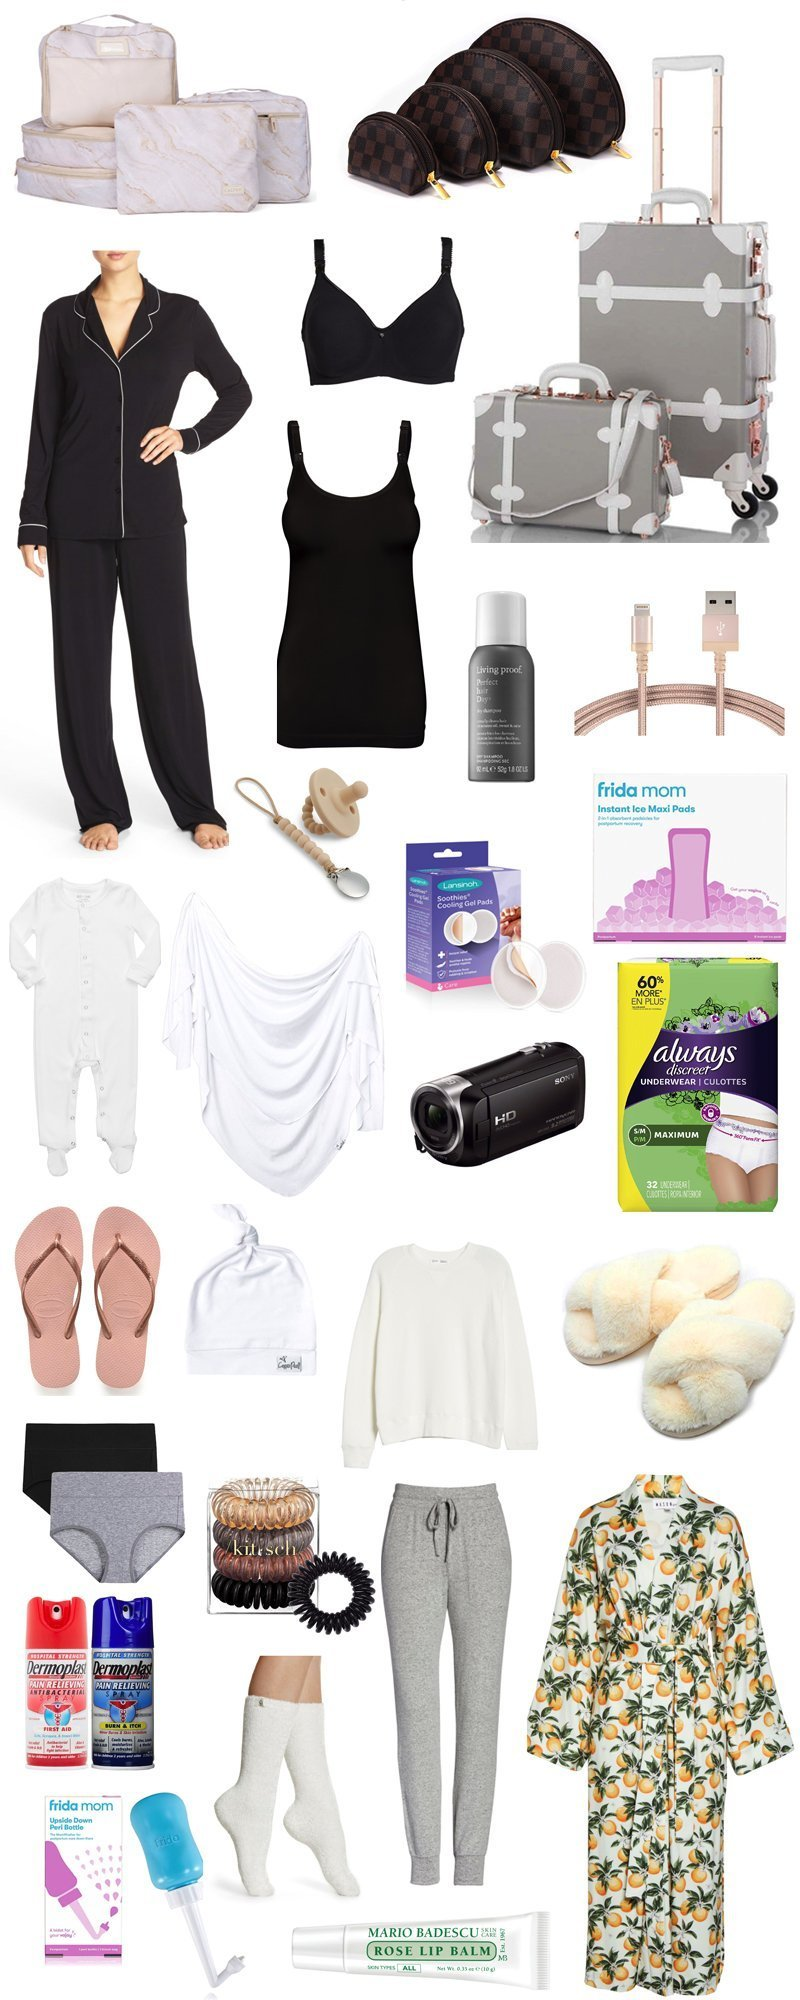 what to pack in hospital bag, what to pack in hospital bag for mom, what to pack in hospital bag for baby